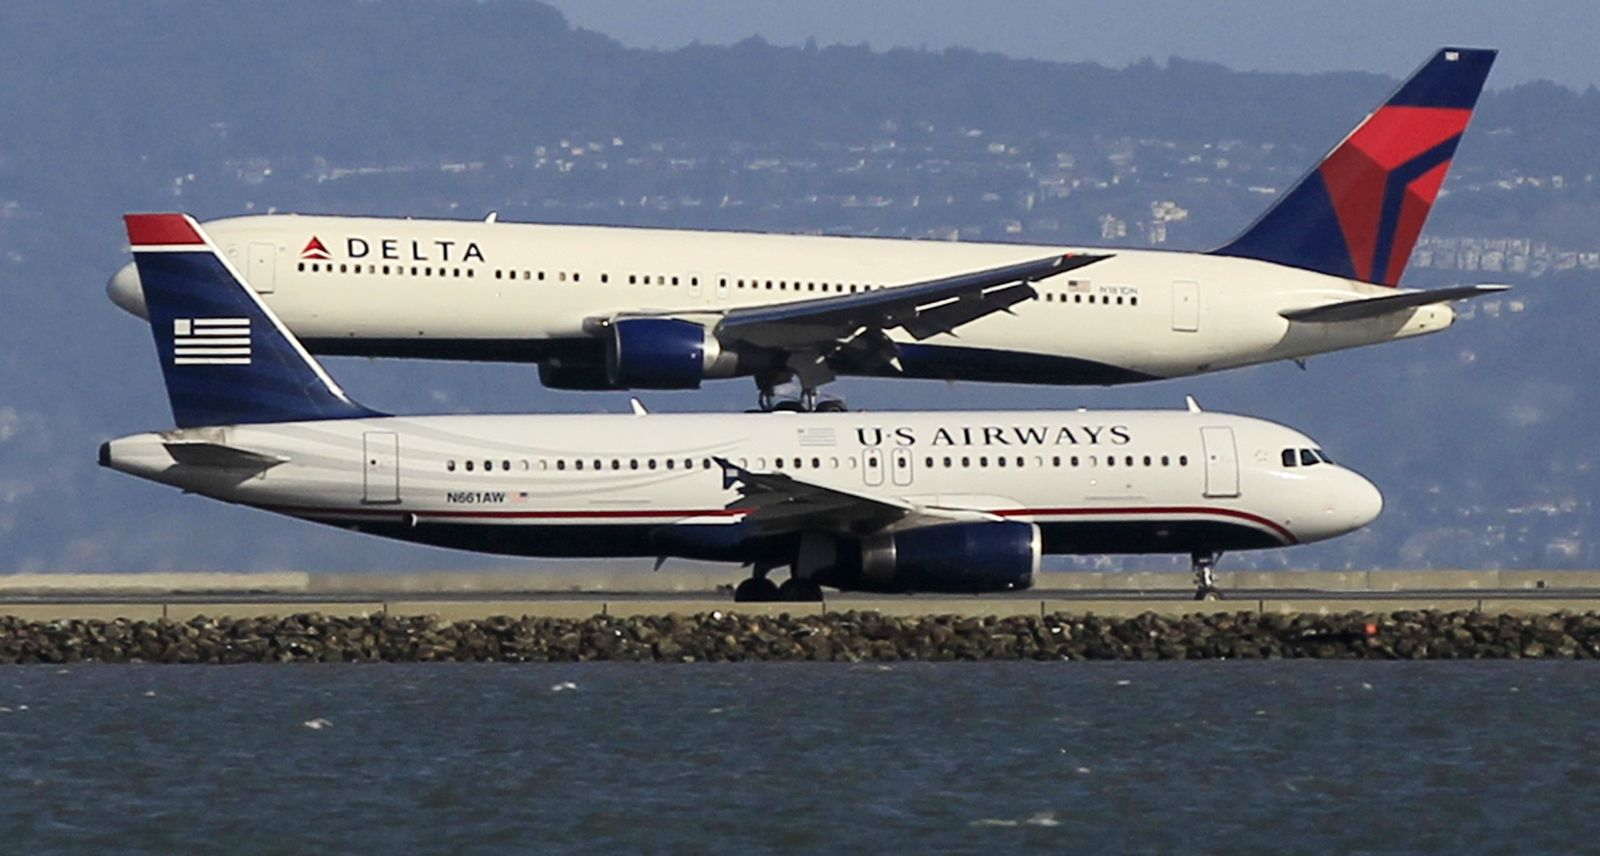 AIRLINES-ISRAEL/